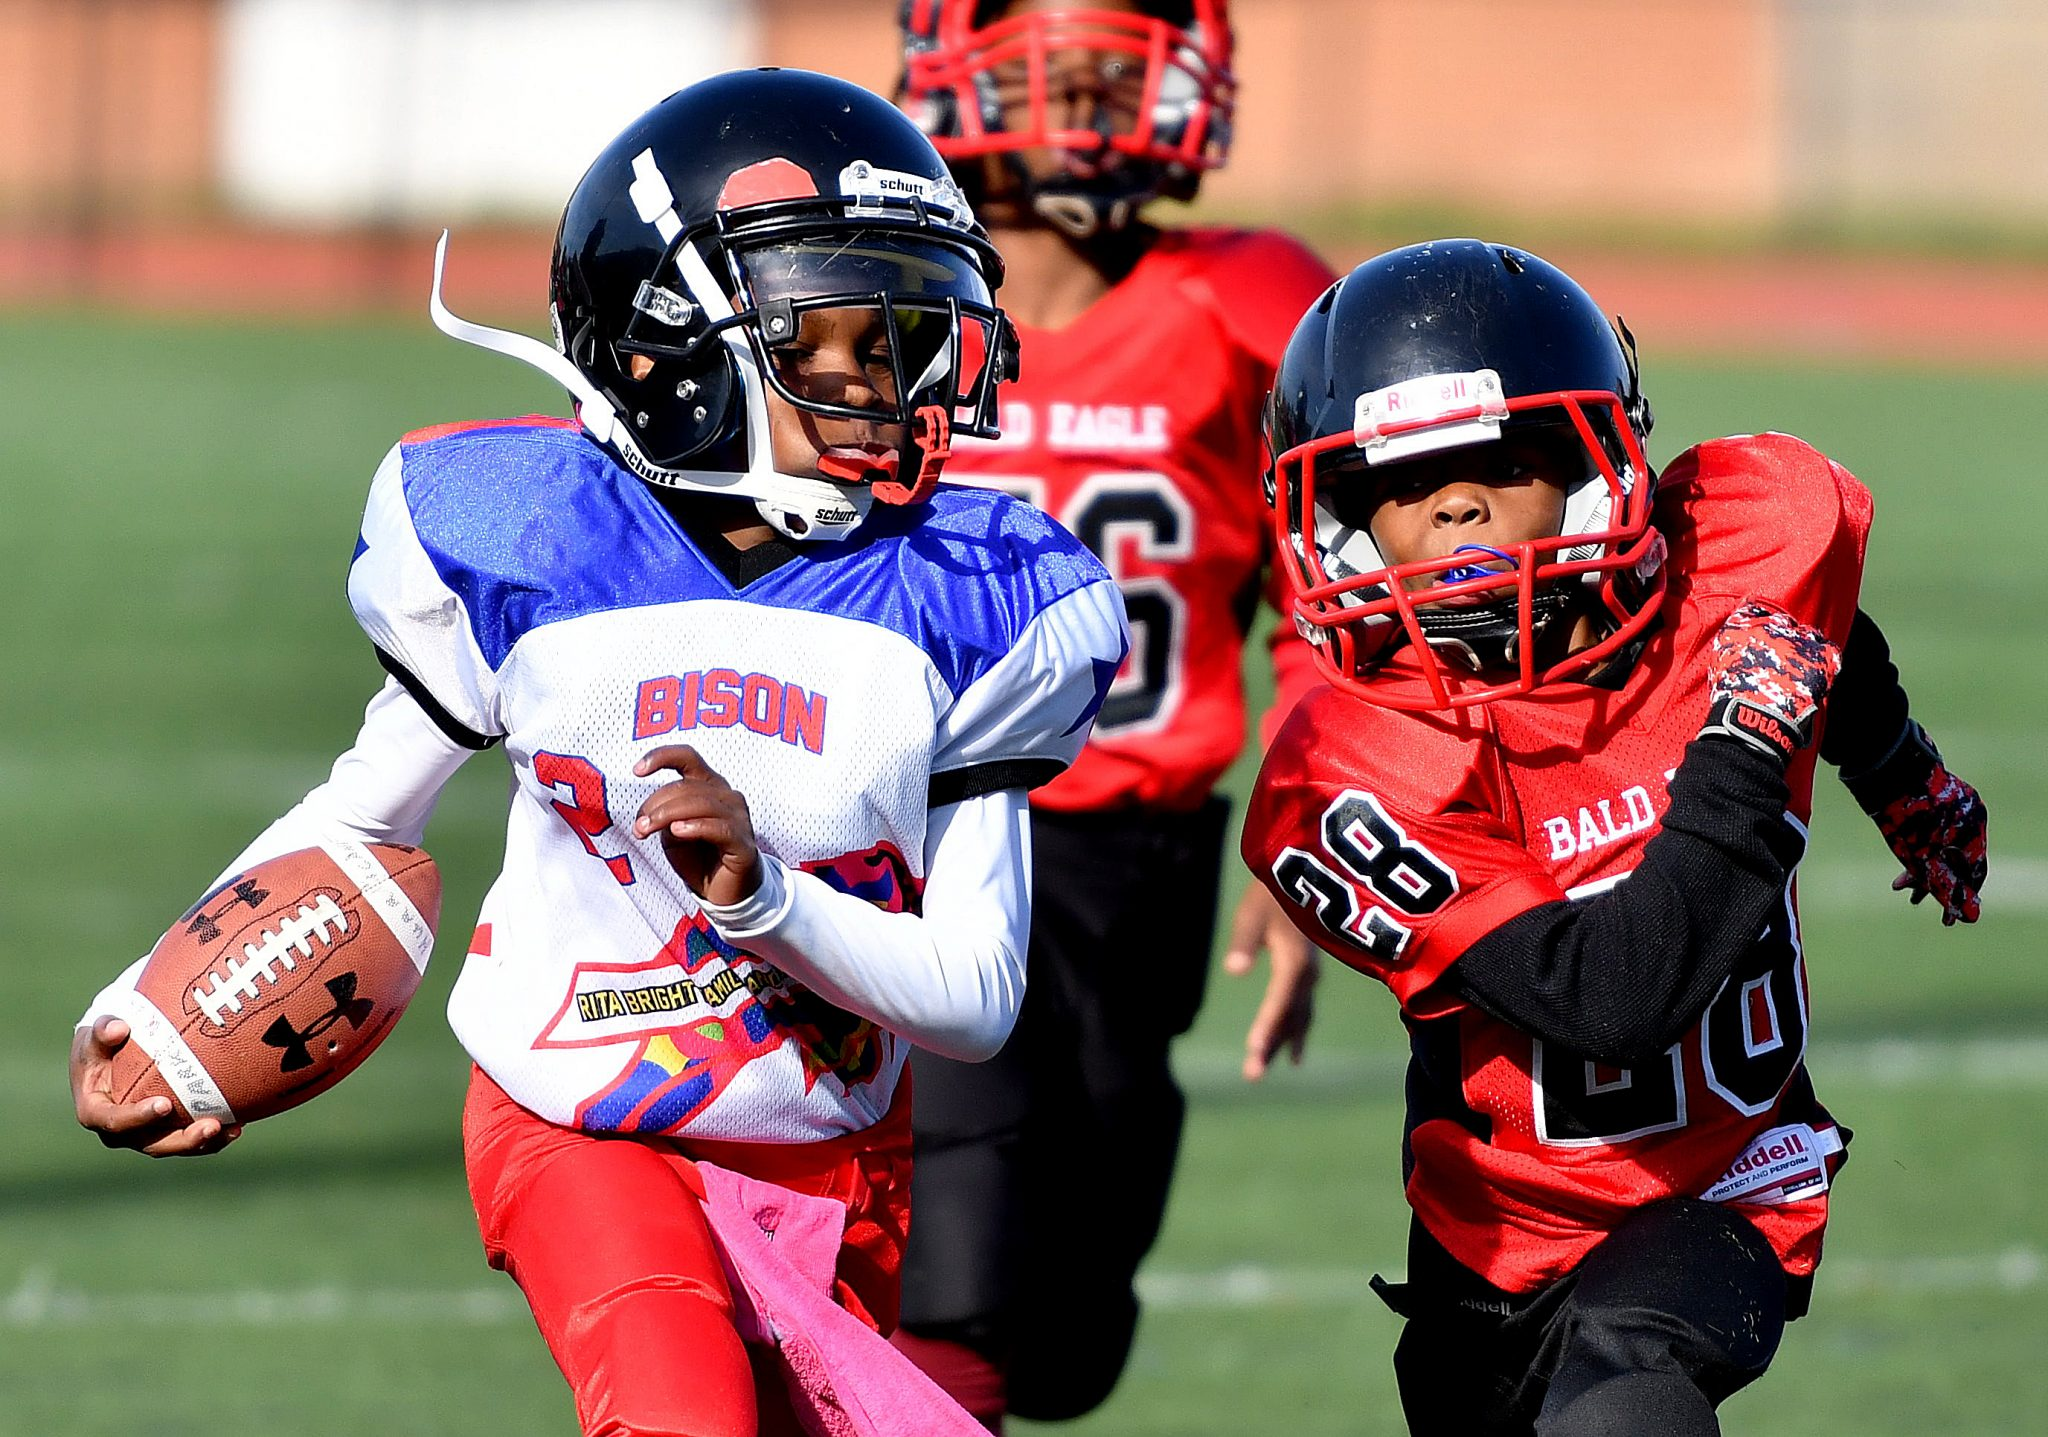 A Rita Bright player runs for a touchdown during a DPR Youth Tackle Football League 10U game at Roosevelt High School Stadium in northwest D.C. on Saturday, Oct. 29. Bald Eagle defeated Rita Bright 25-21. /Photo by John E. De Freitas